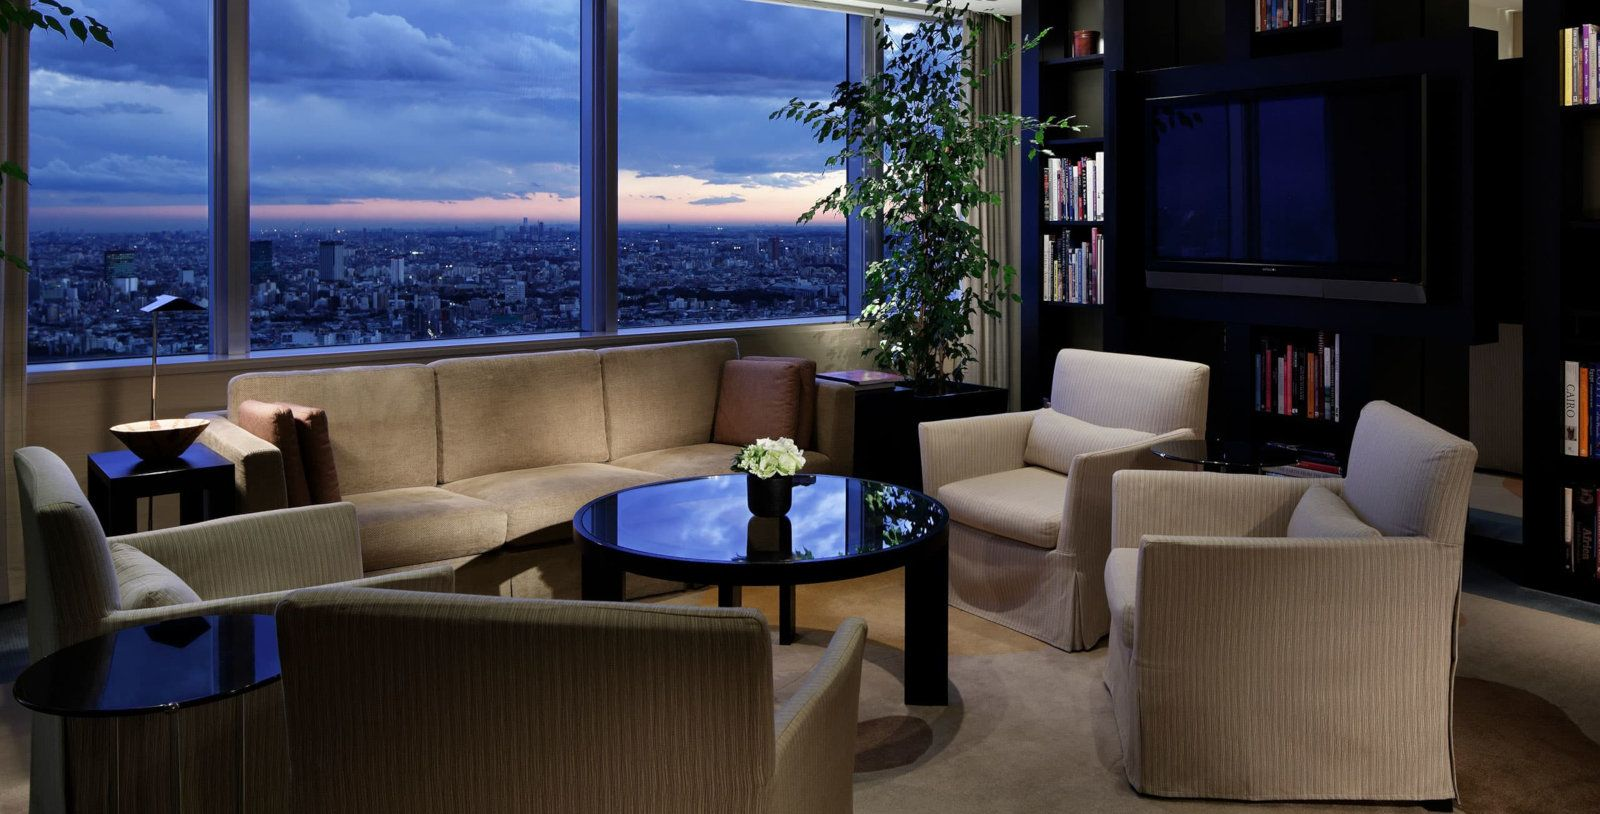 The Park Hyatt in Tokyo is famous, luxurious and a great place for gay travellers to stay.